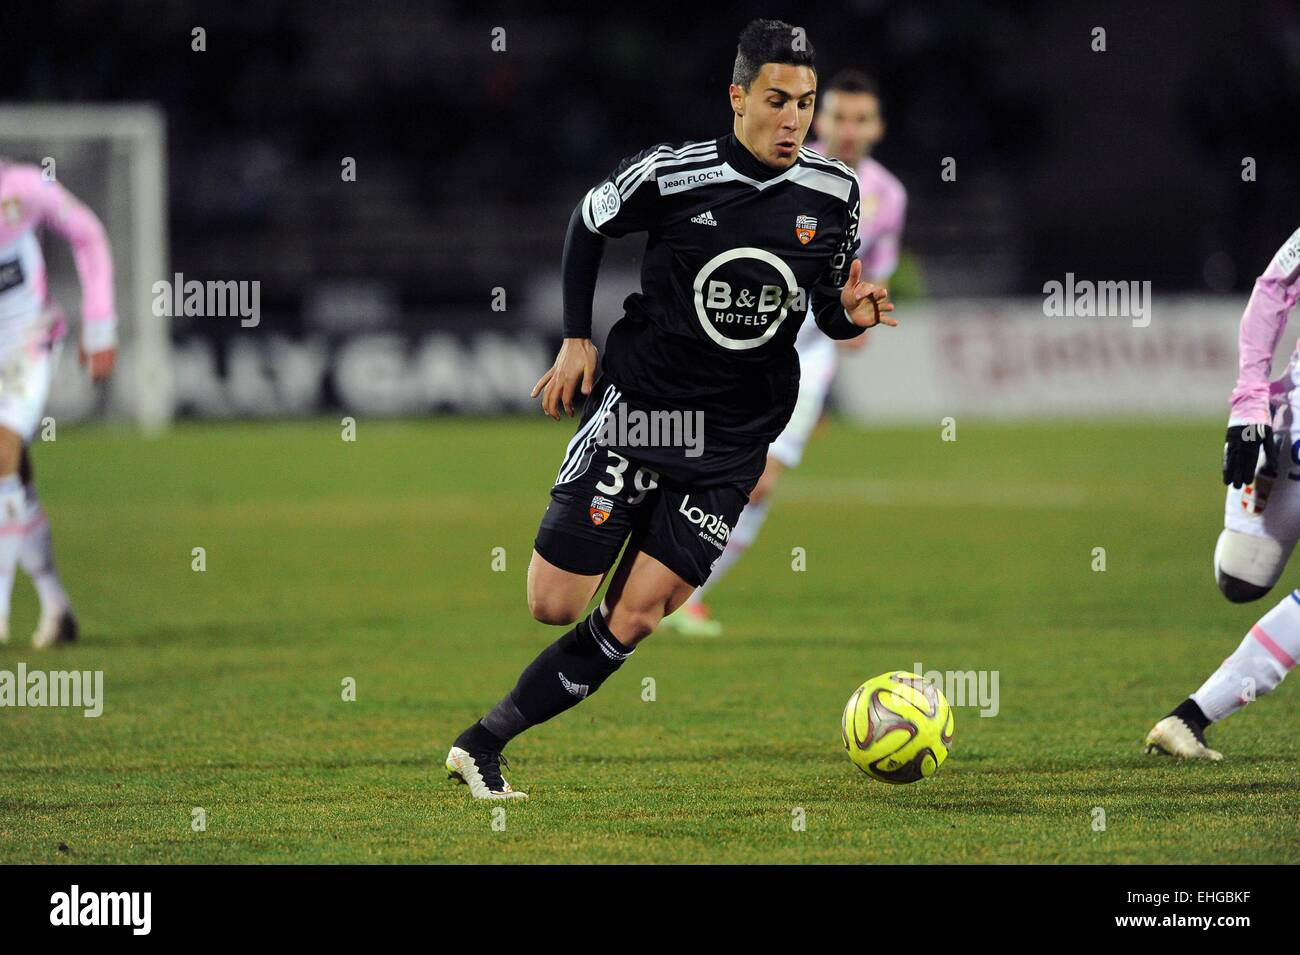 Gianni bruno evian thonon lorient match for Lorient match